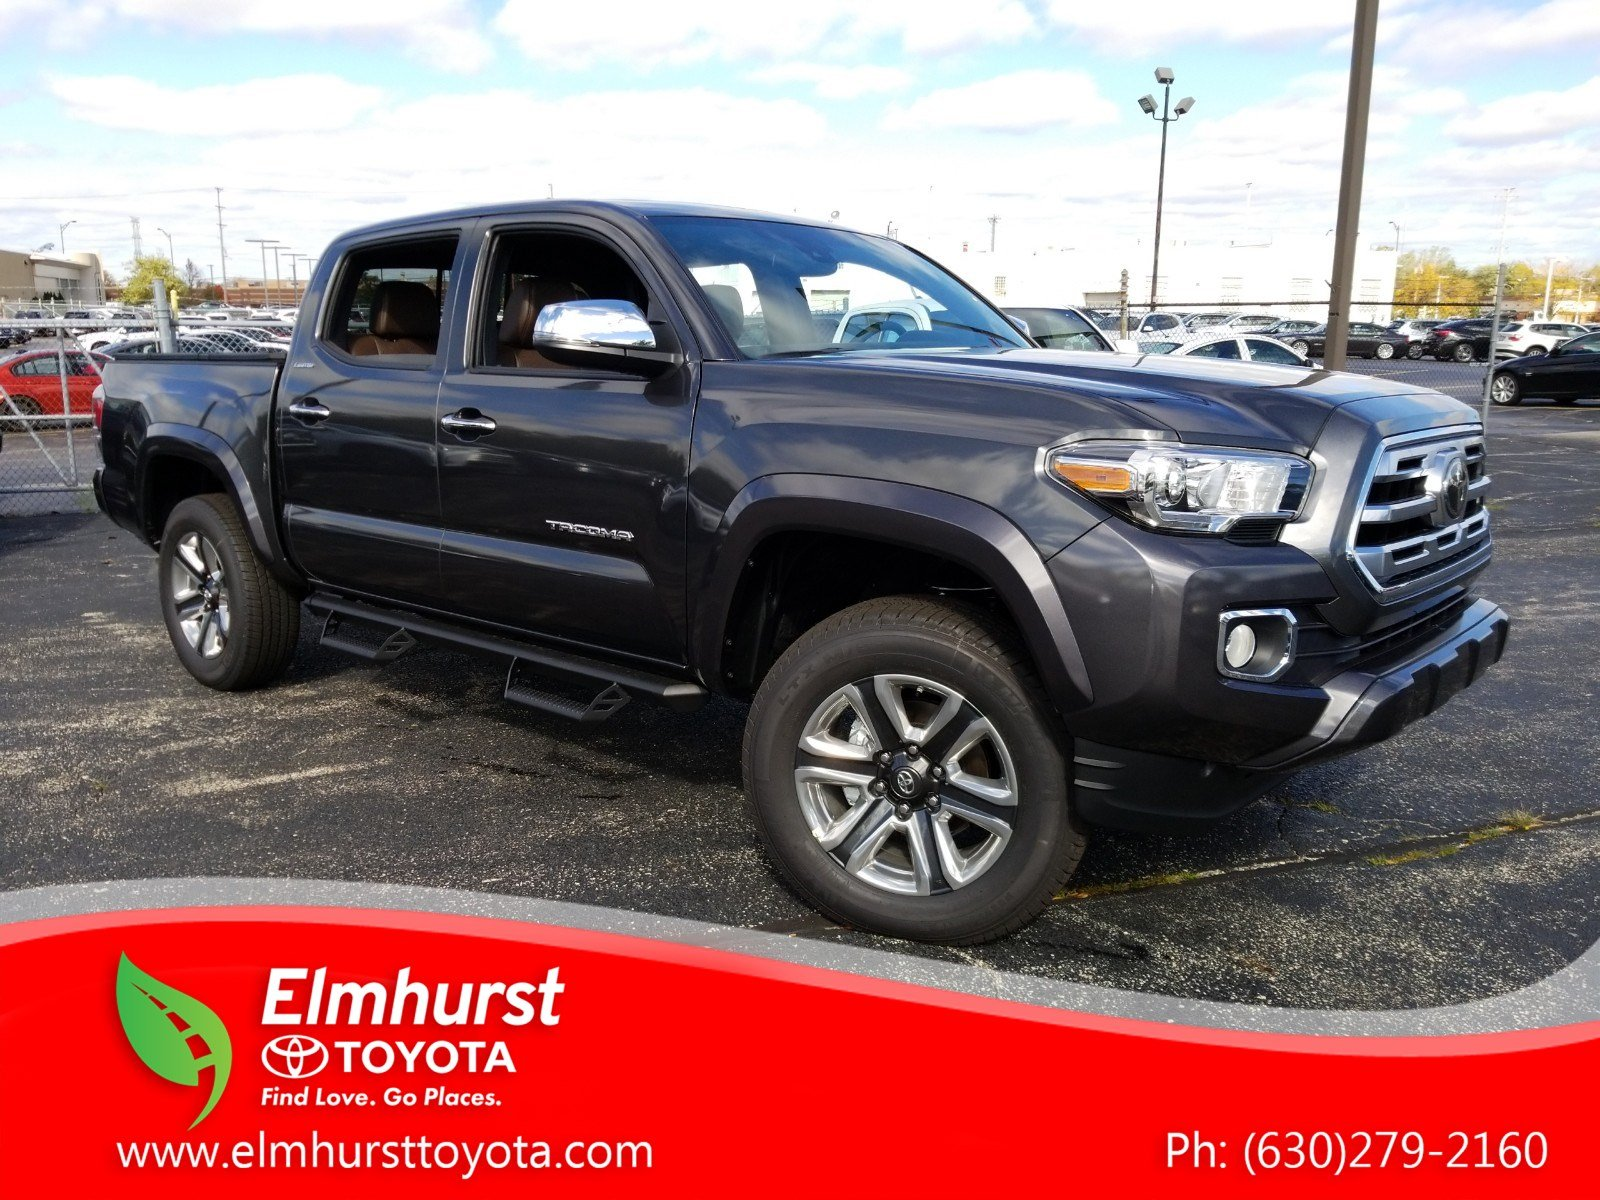 New 2019 Toyota Tacoma Limited Double Cab In Elmhurst Long Bed Fuel Hostage Wheels